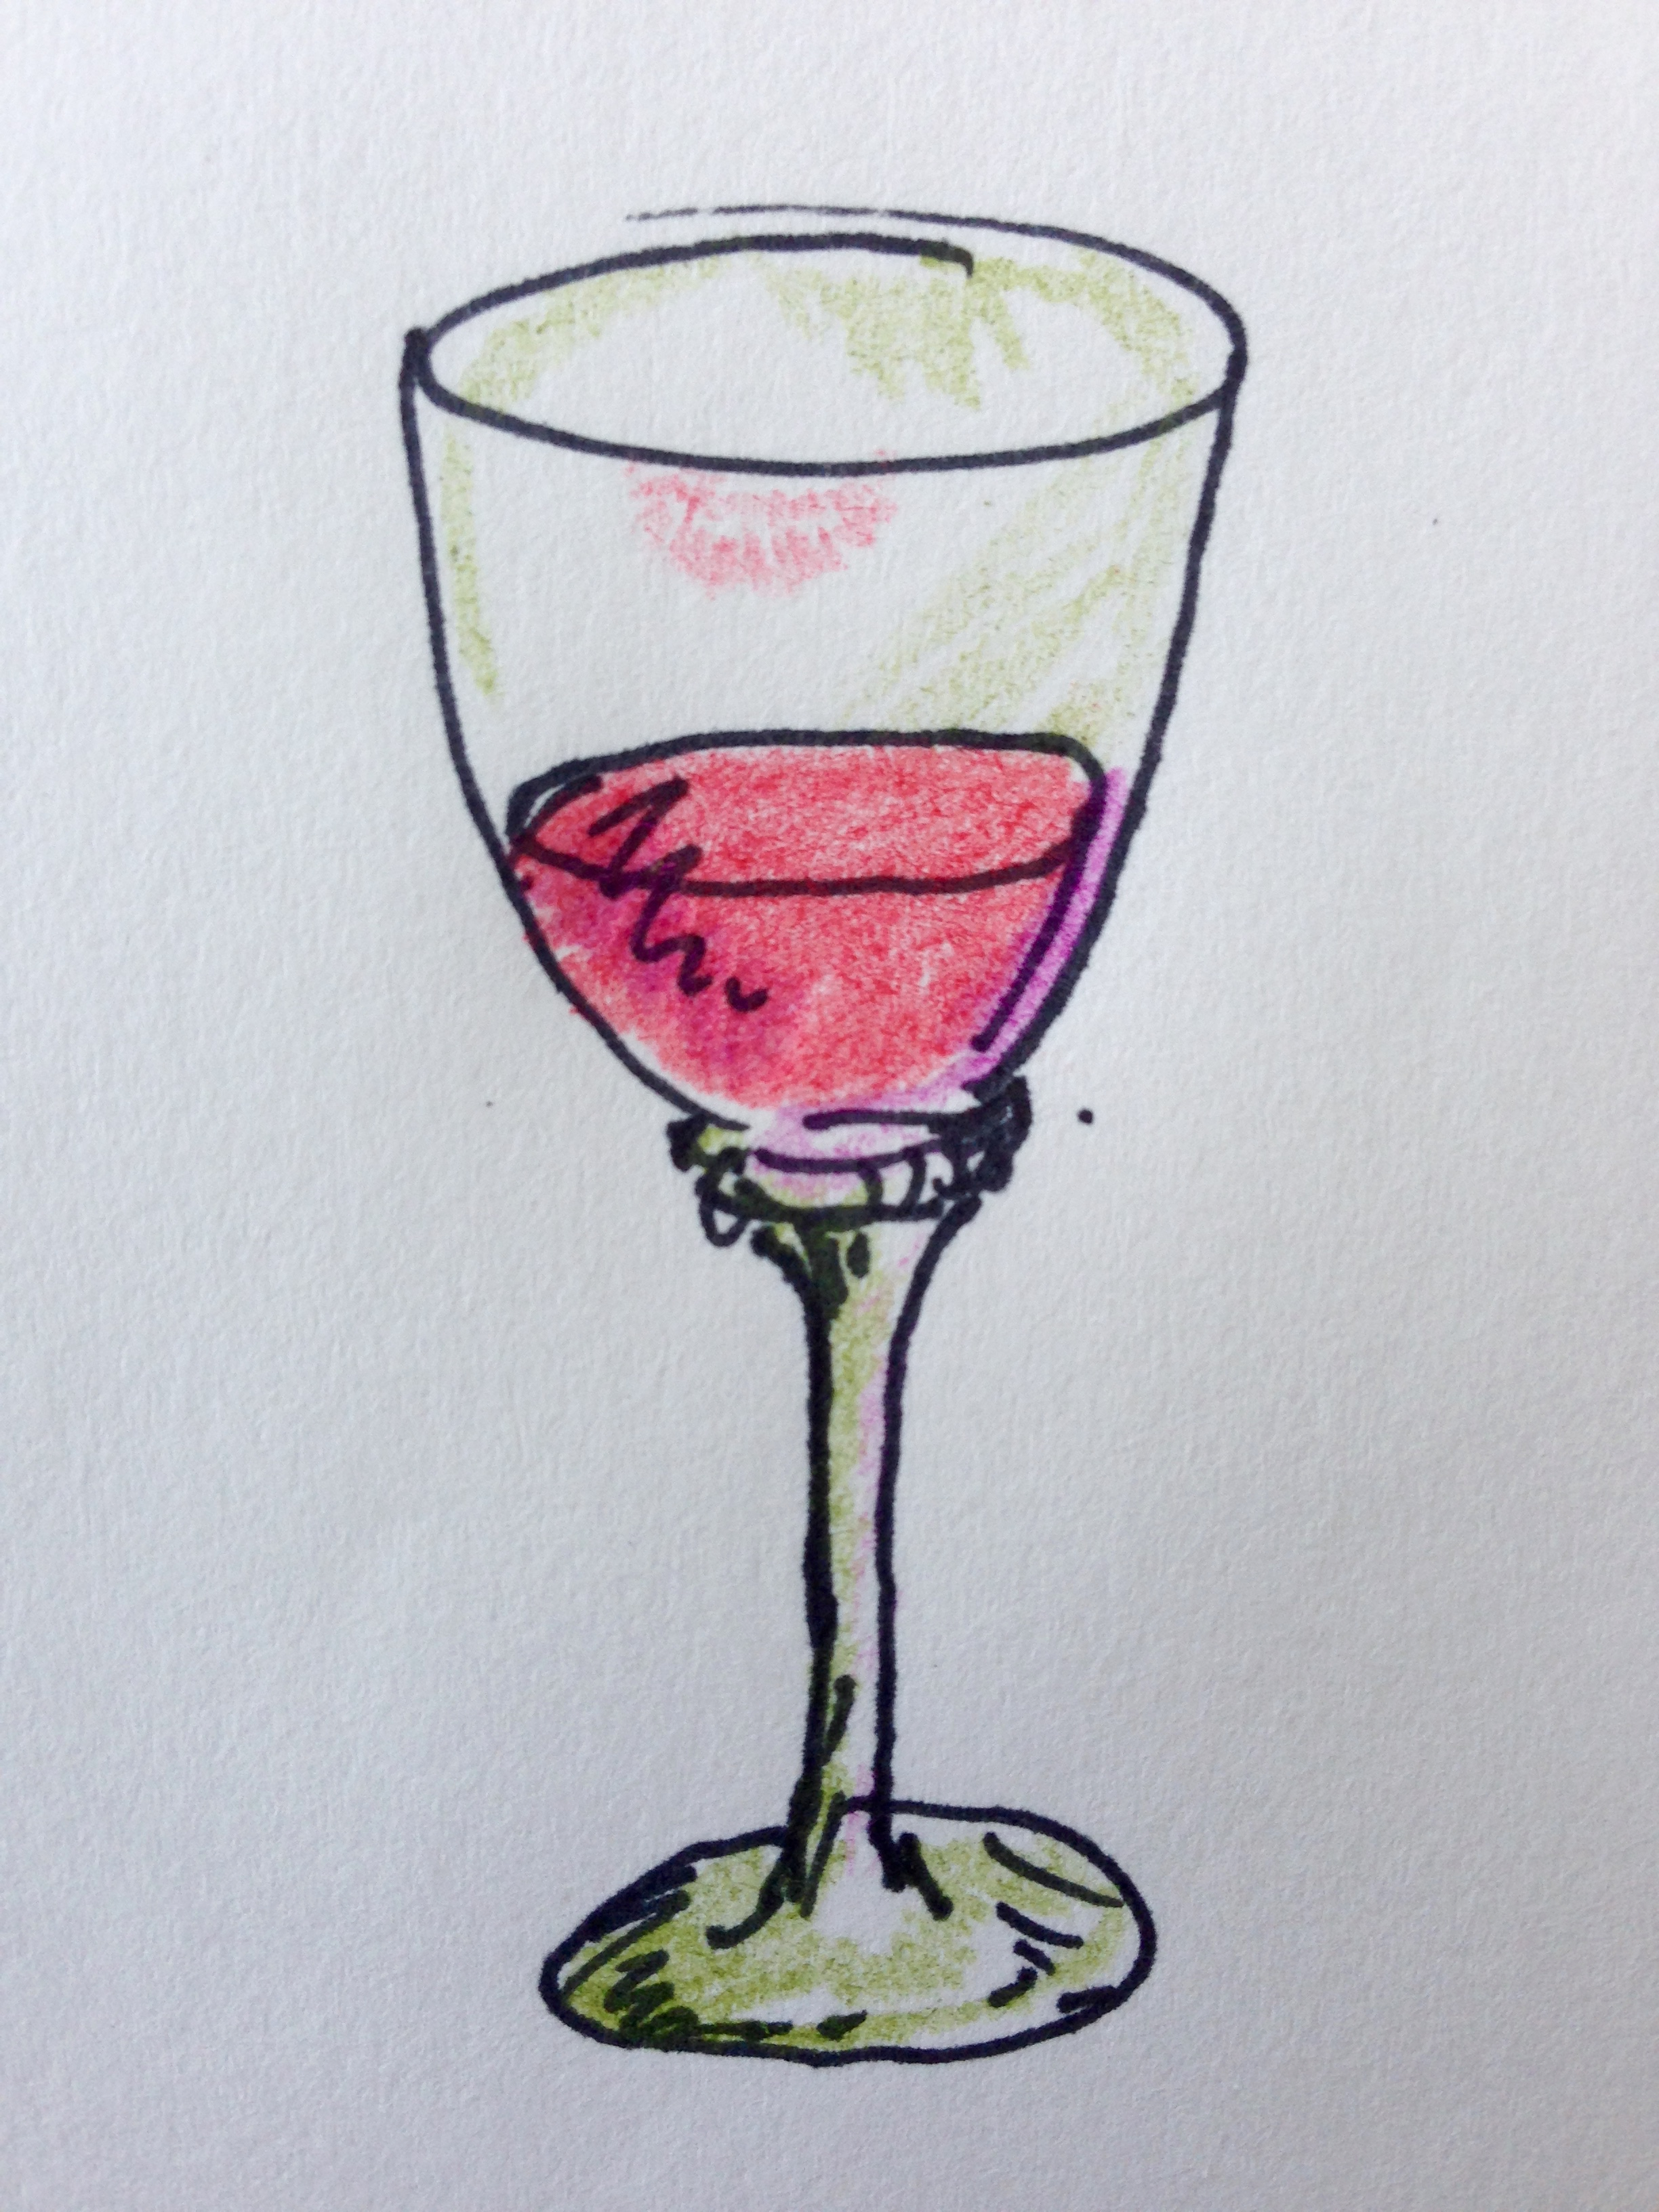 Another glass of hemlock?  - Illustration by Heather Phillips